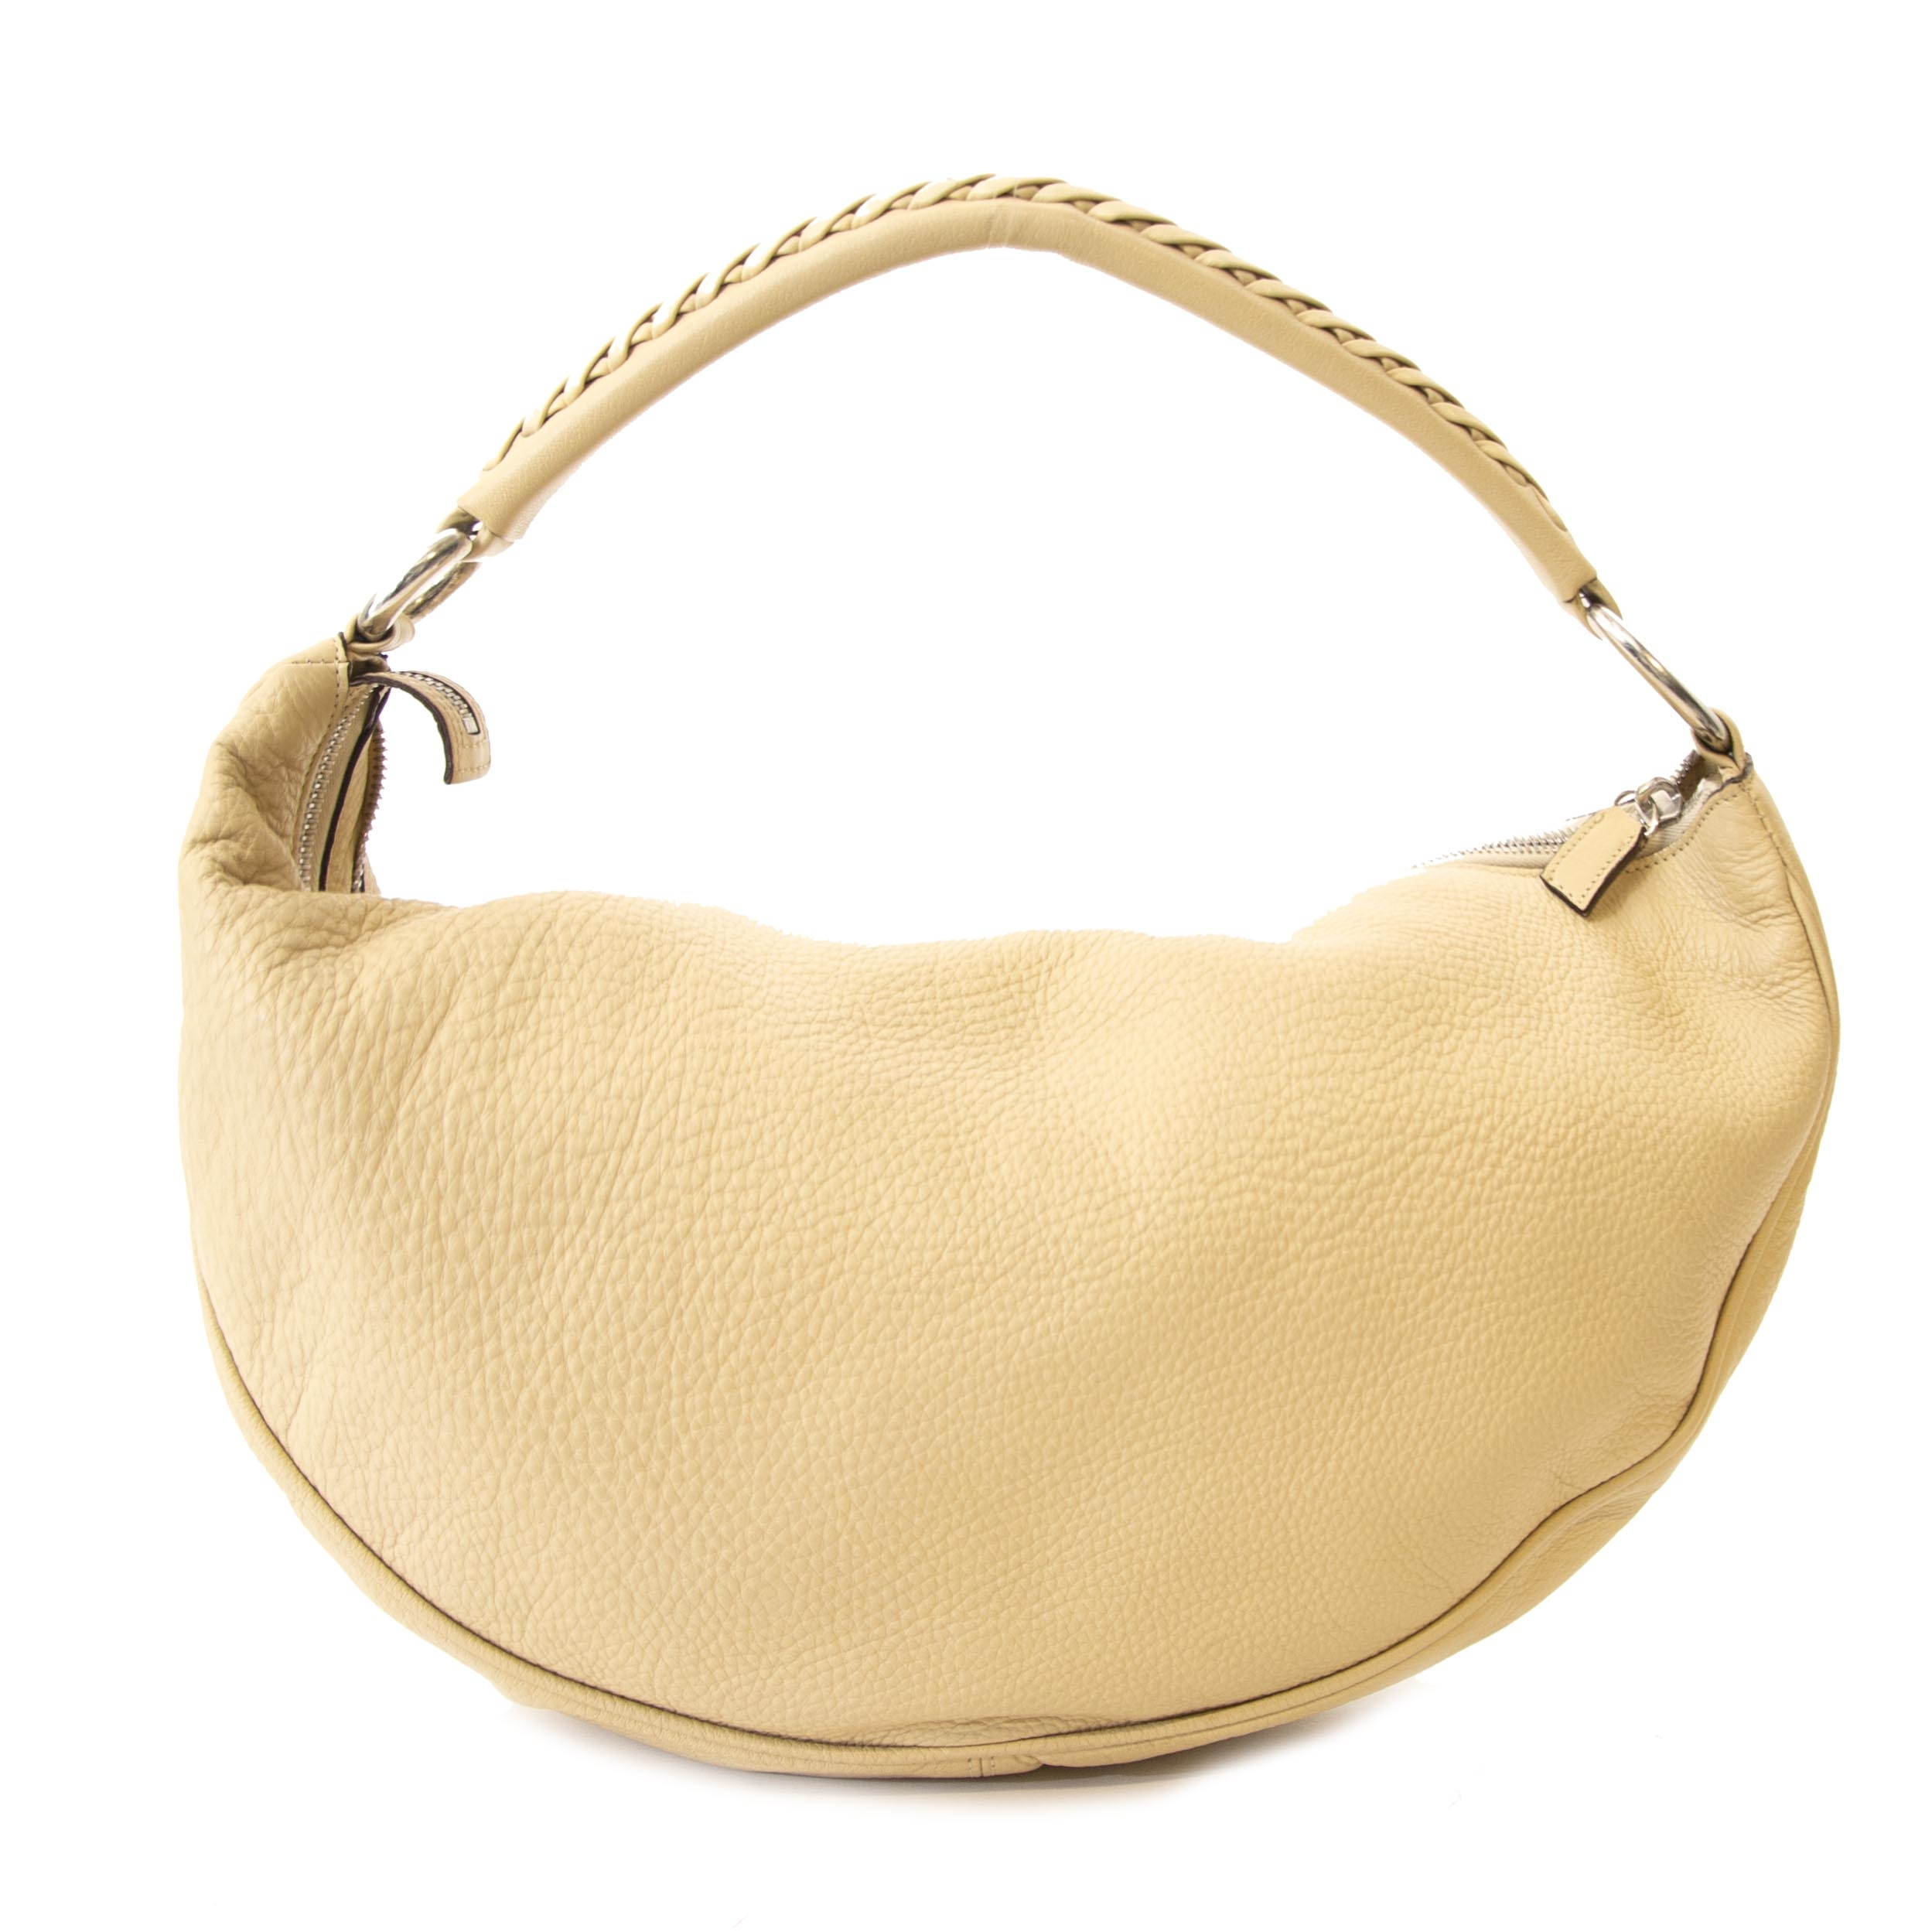 Authentic second hand vintage  Versace Ivory Half Moon Shoulder Bag buy online webshop LabelLOV